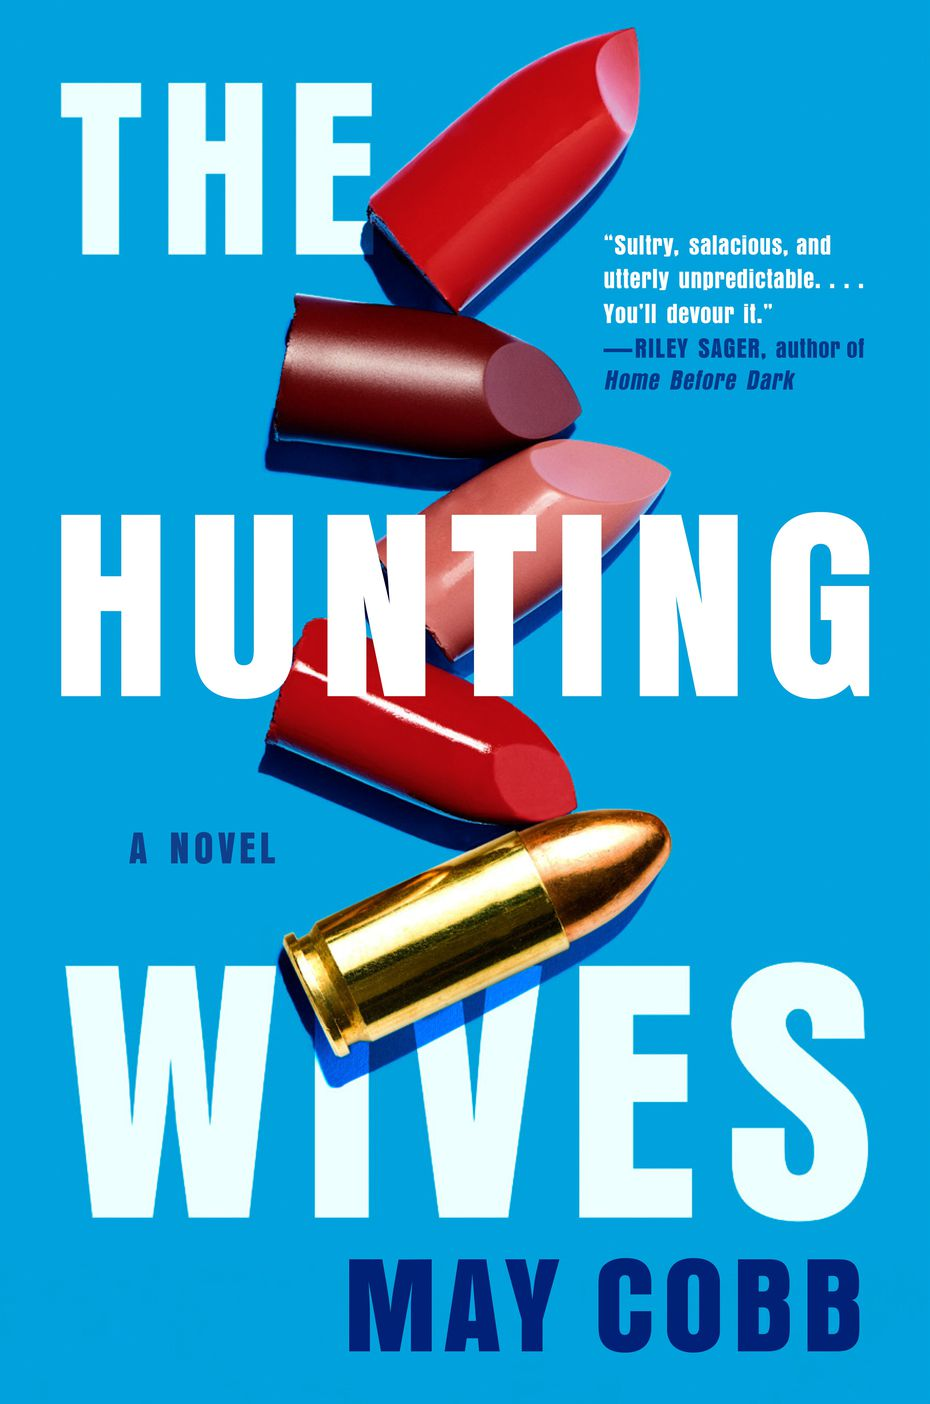 """""""The Hunting Wives"""" by May Cobb follows a woman who leaves a high-powered job in Chicago in search of a simpler life back where she grew up in East Texas. What she finds instead is a clique of grown-up, gun-toting Mean Girls and murder."""